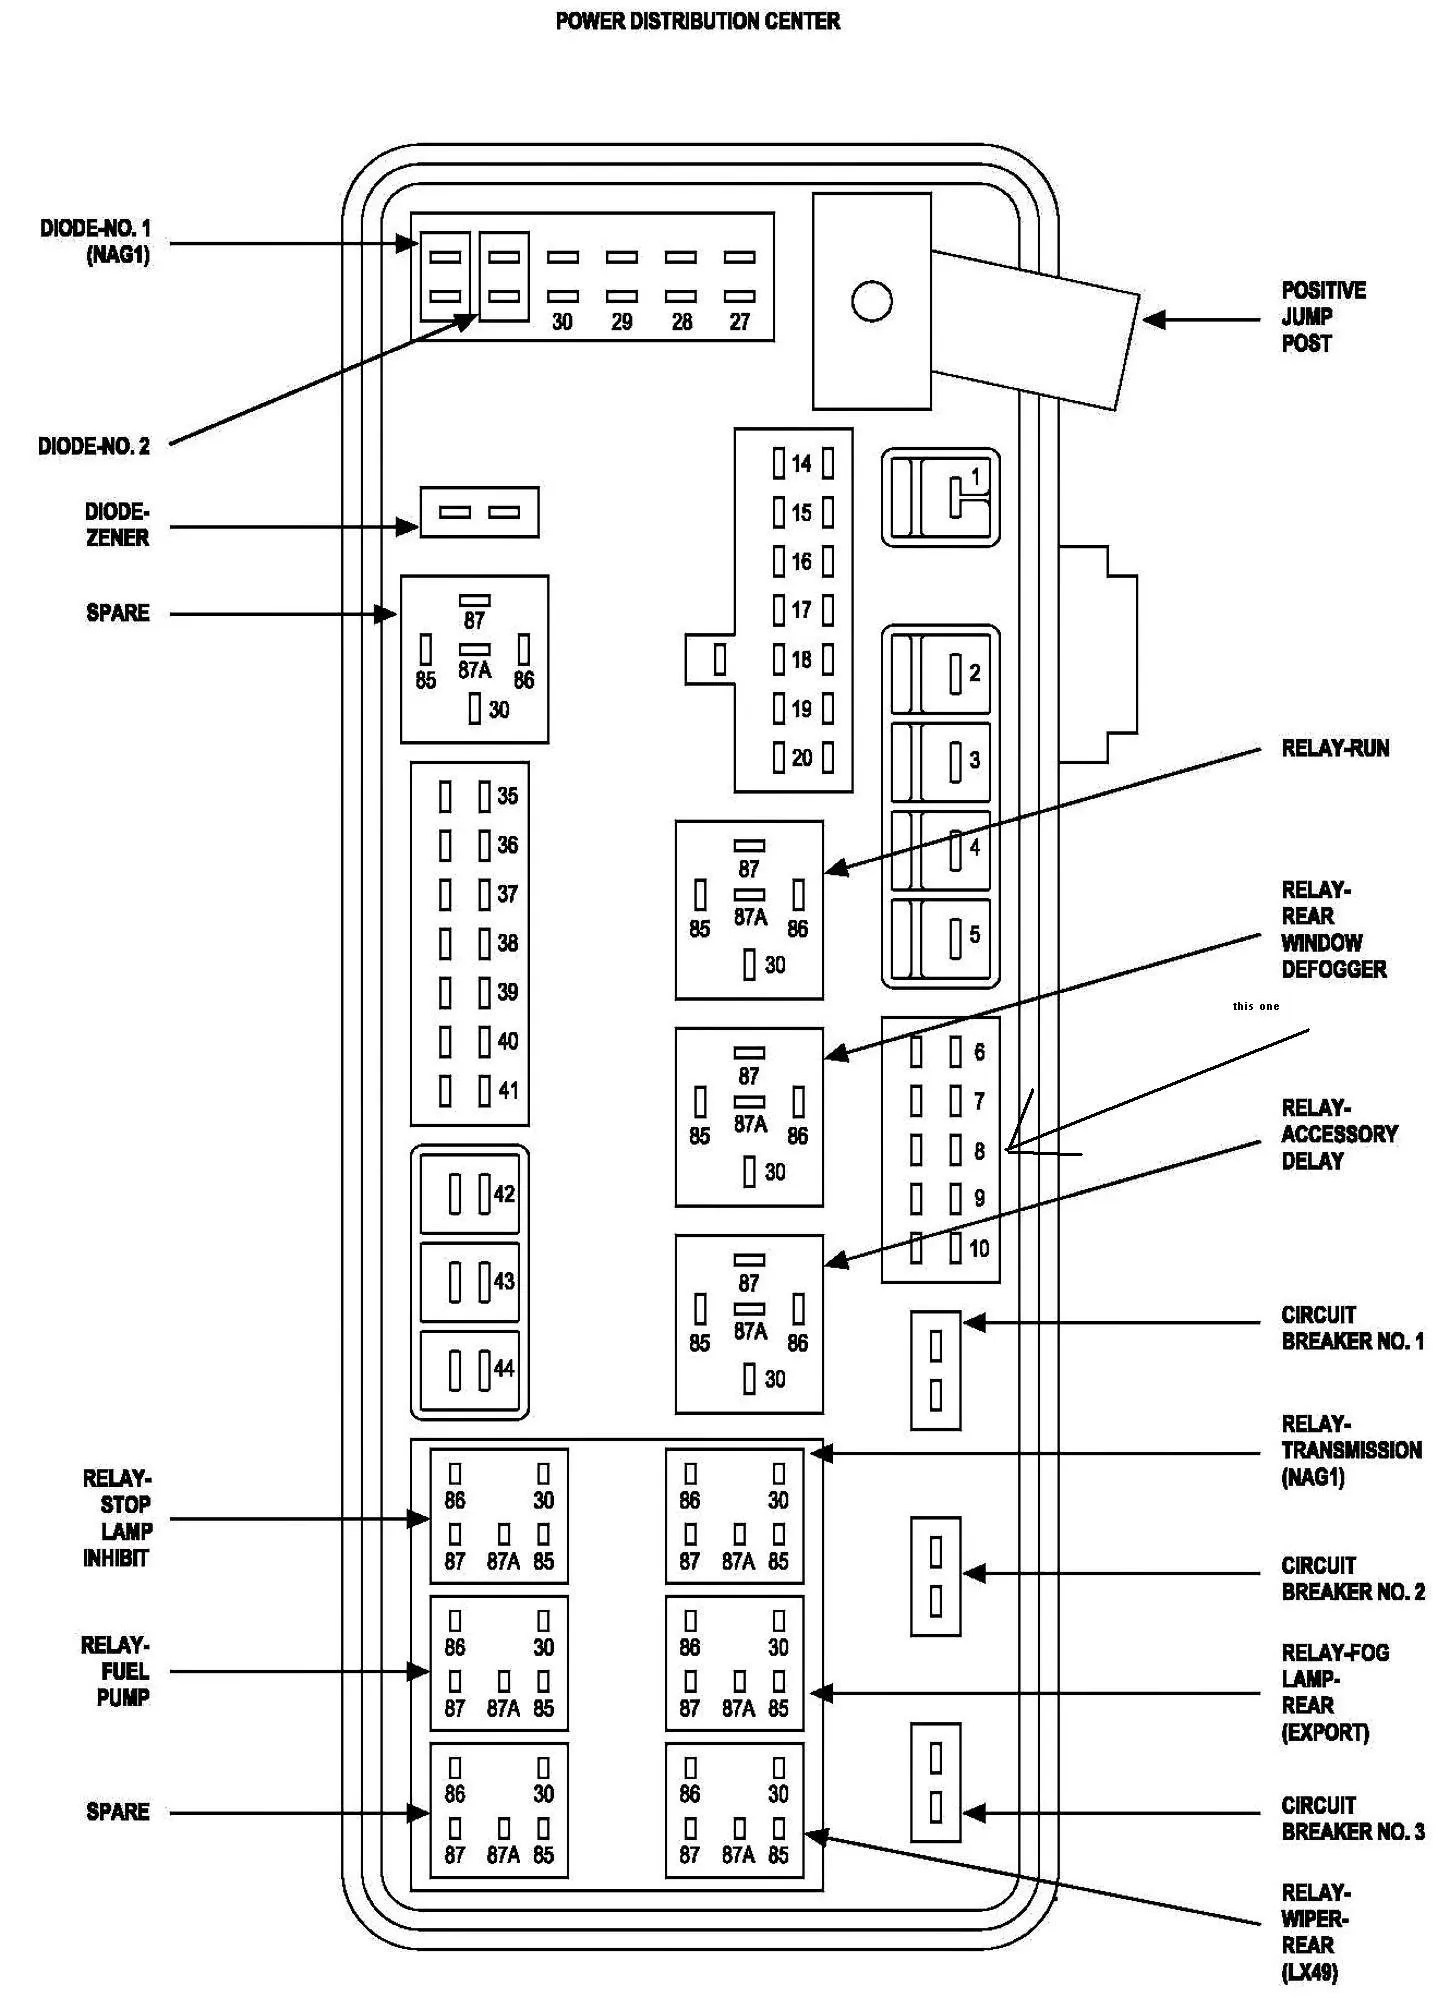 hight resolution of 2011 dodge ram 1500 fuse box diagram wiring diagram portal 2002 dodge ram electrical diagram 2001